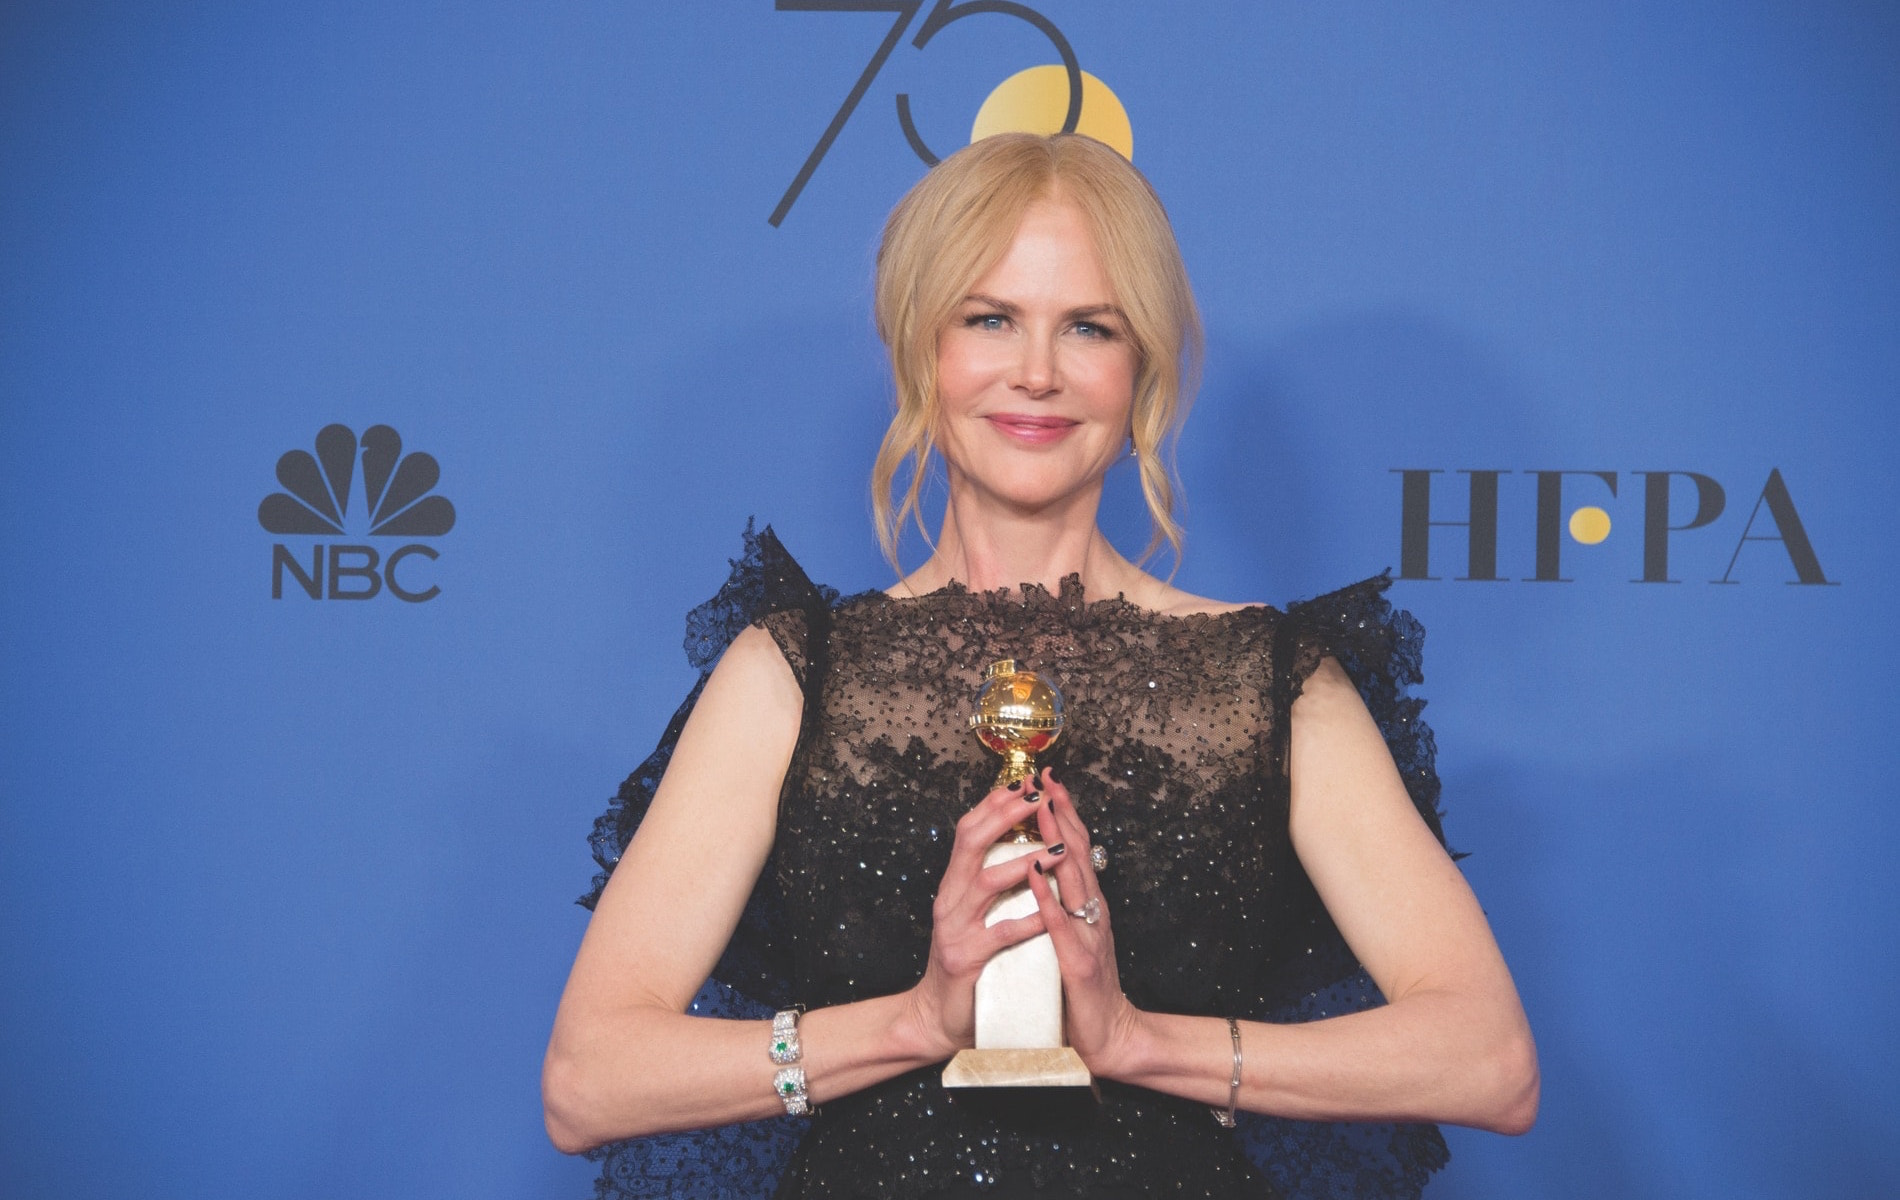 75th Annual Golden Globe Awards, Golden Globe Awards, Beverly Hilton, Beverly Hills, California, Nicole Kidman, Hollywood Foreign Press Association